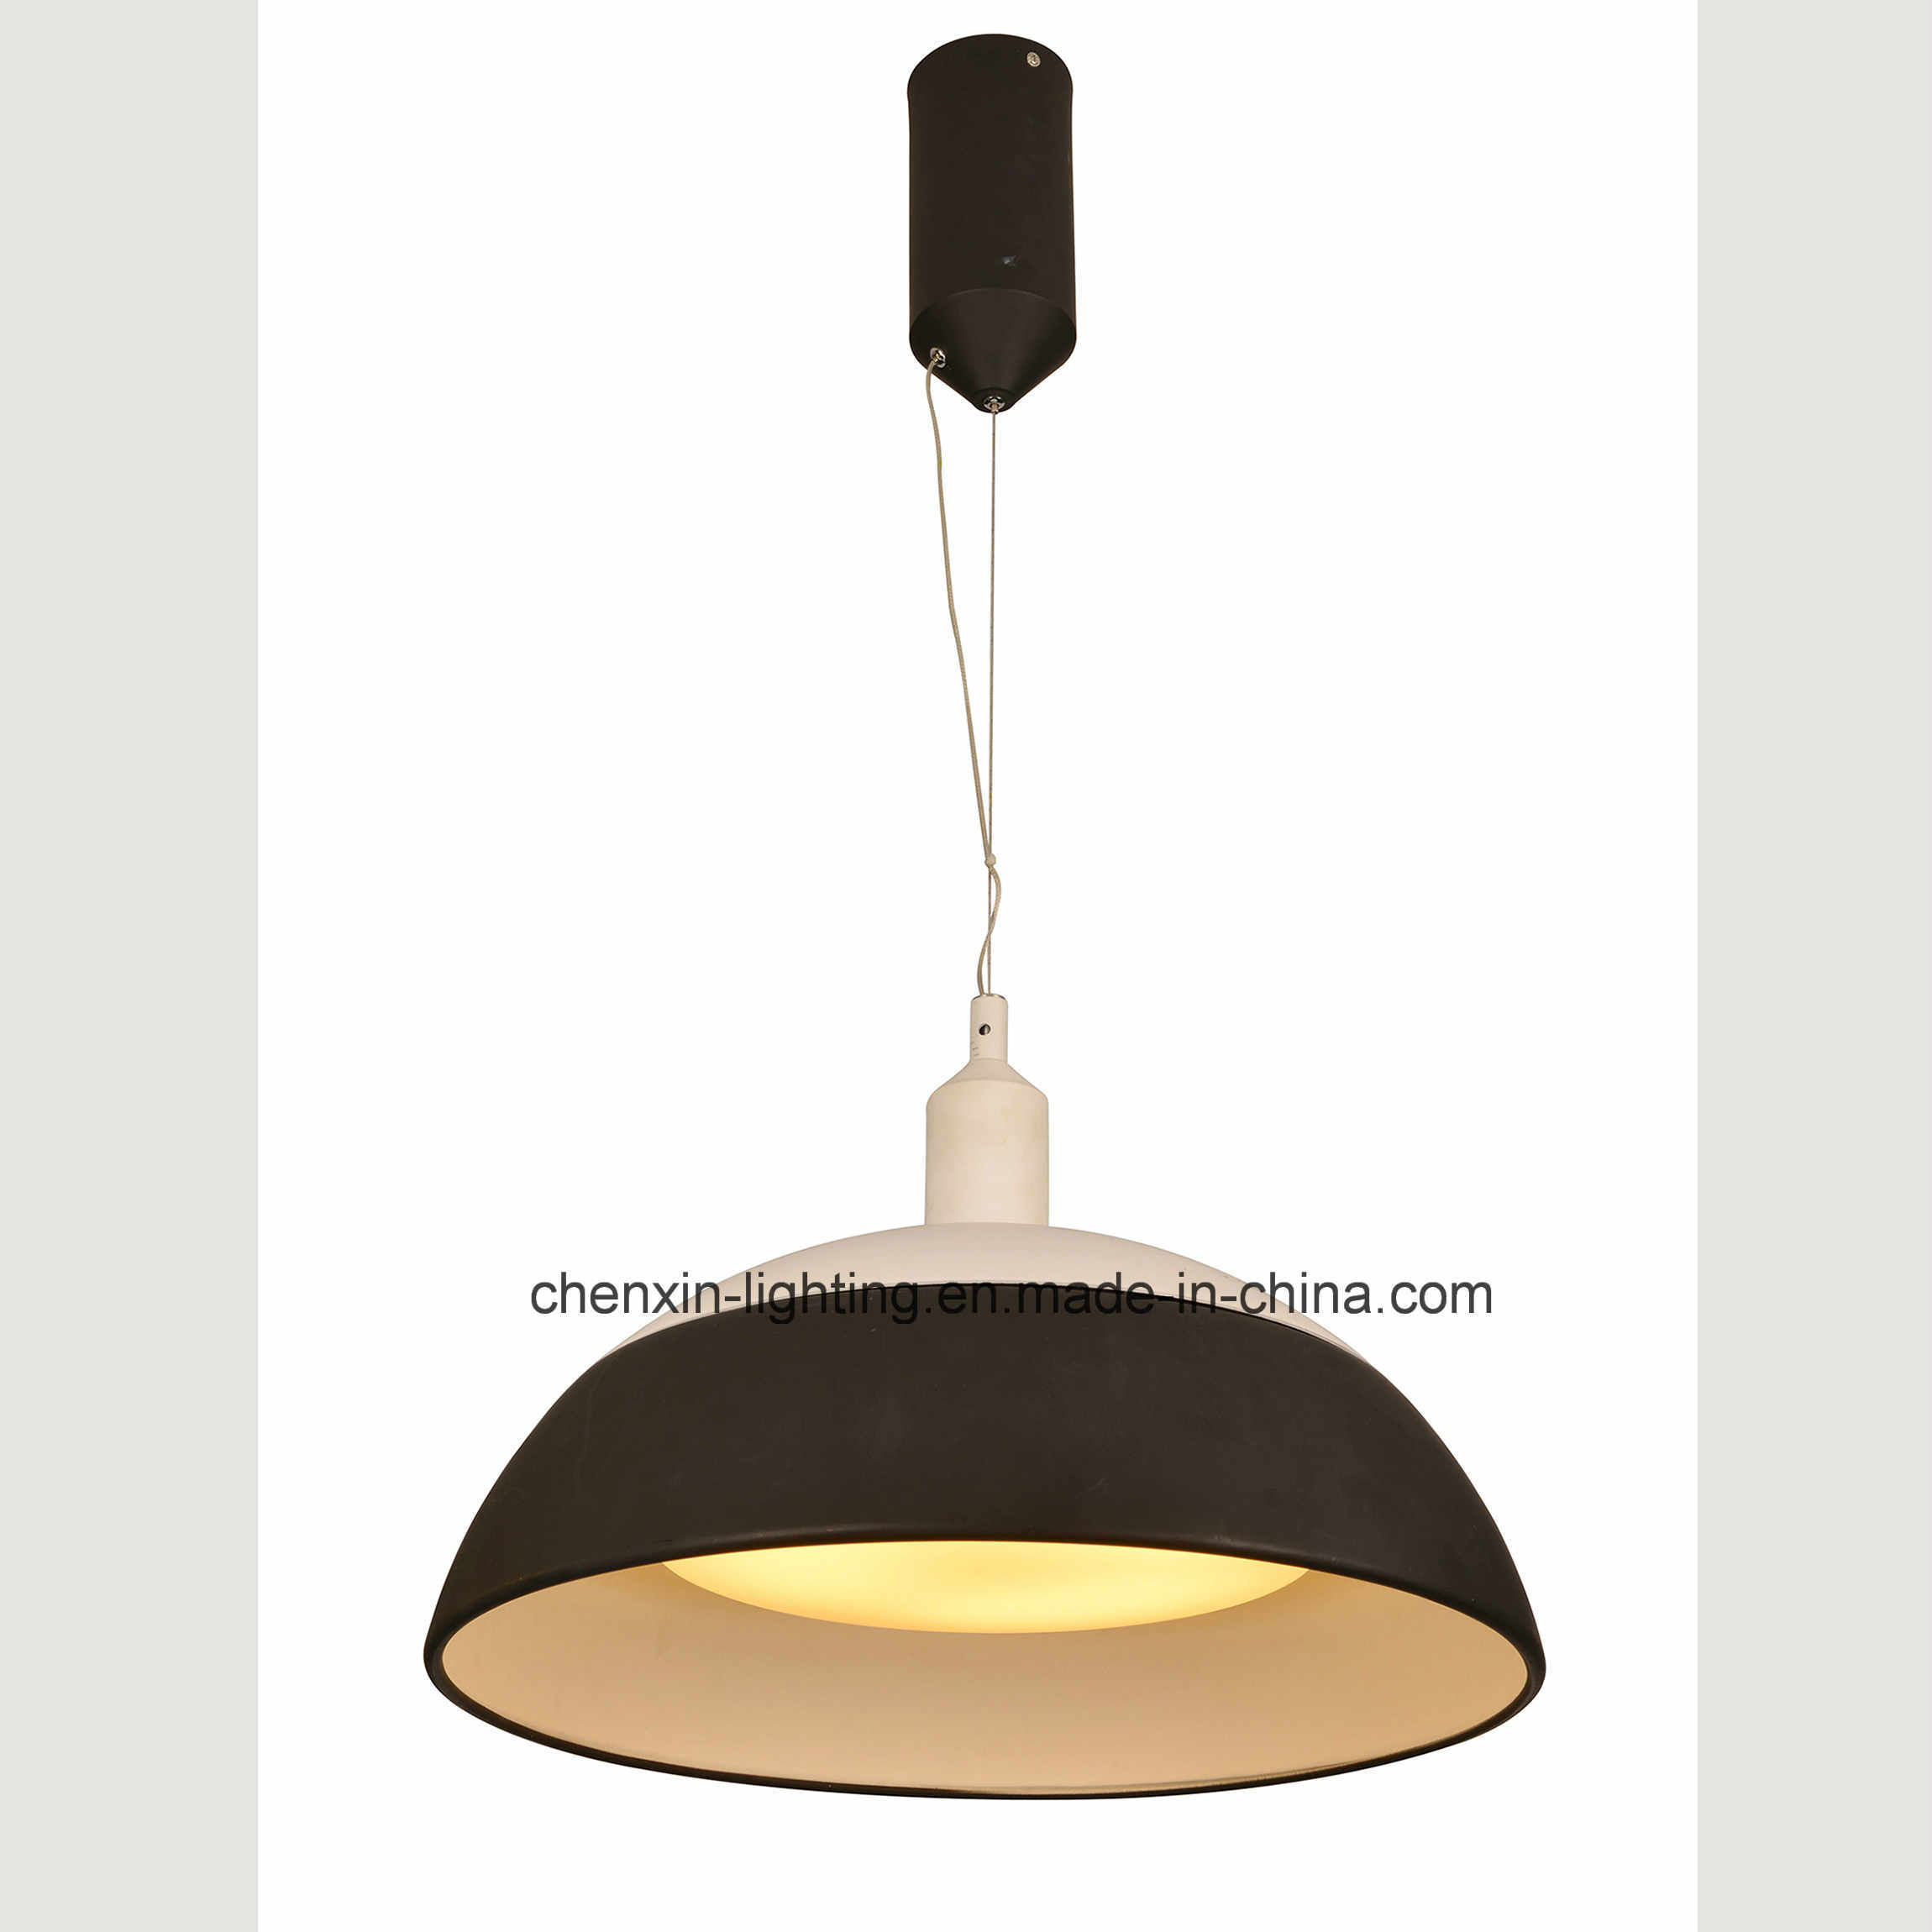 Modern Round Iron Black Pendant Light/Hanging Lamp